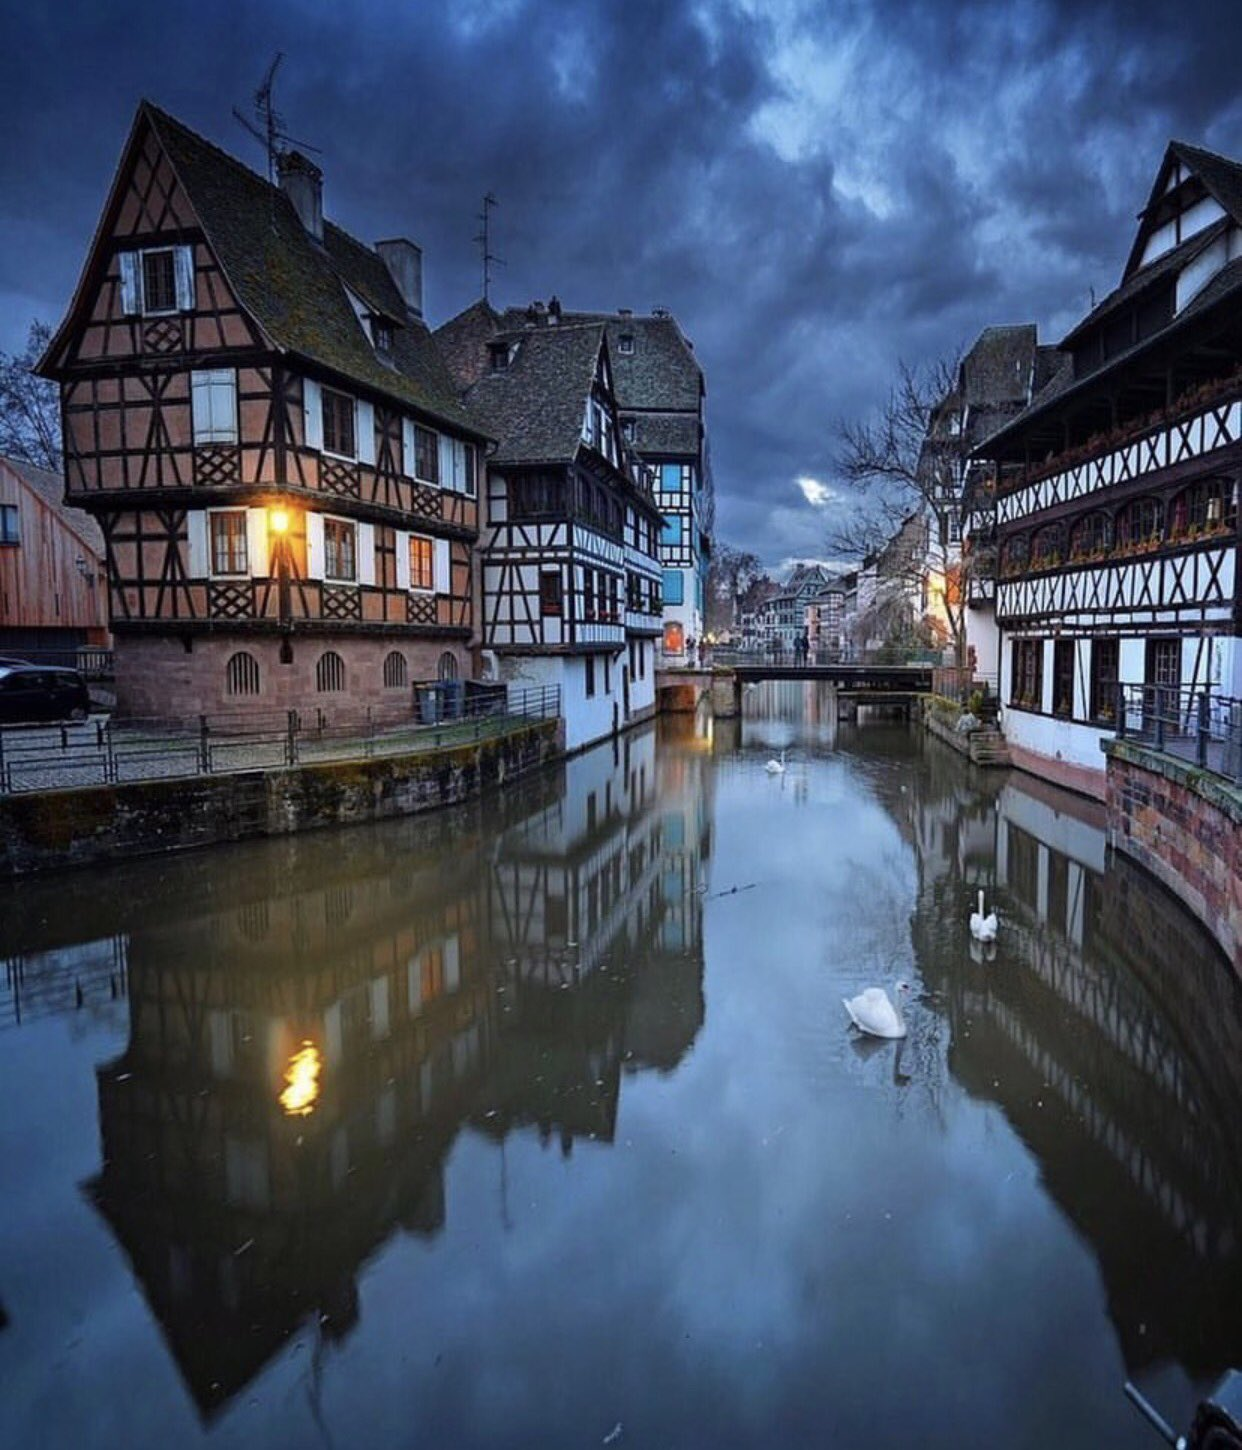 Peaceful night! | Shot by @ilhan1077 in Strasbourg, France https://t.co/oDK6SZdjv3